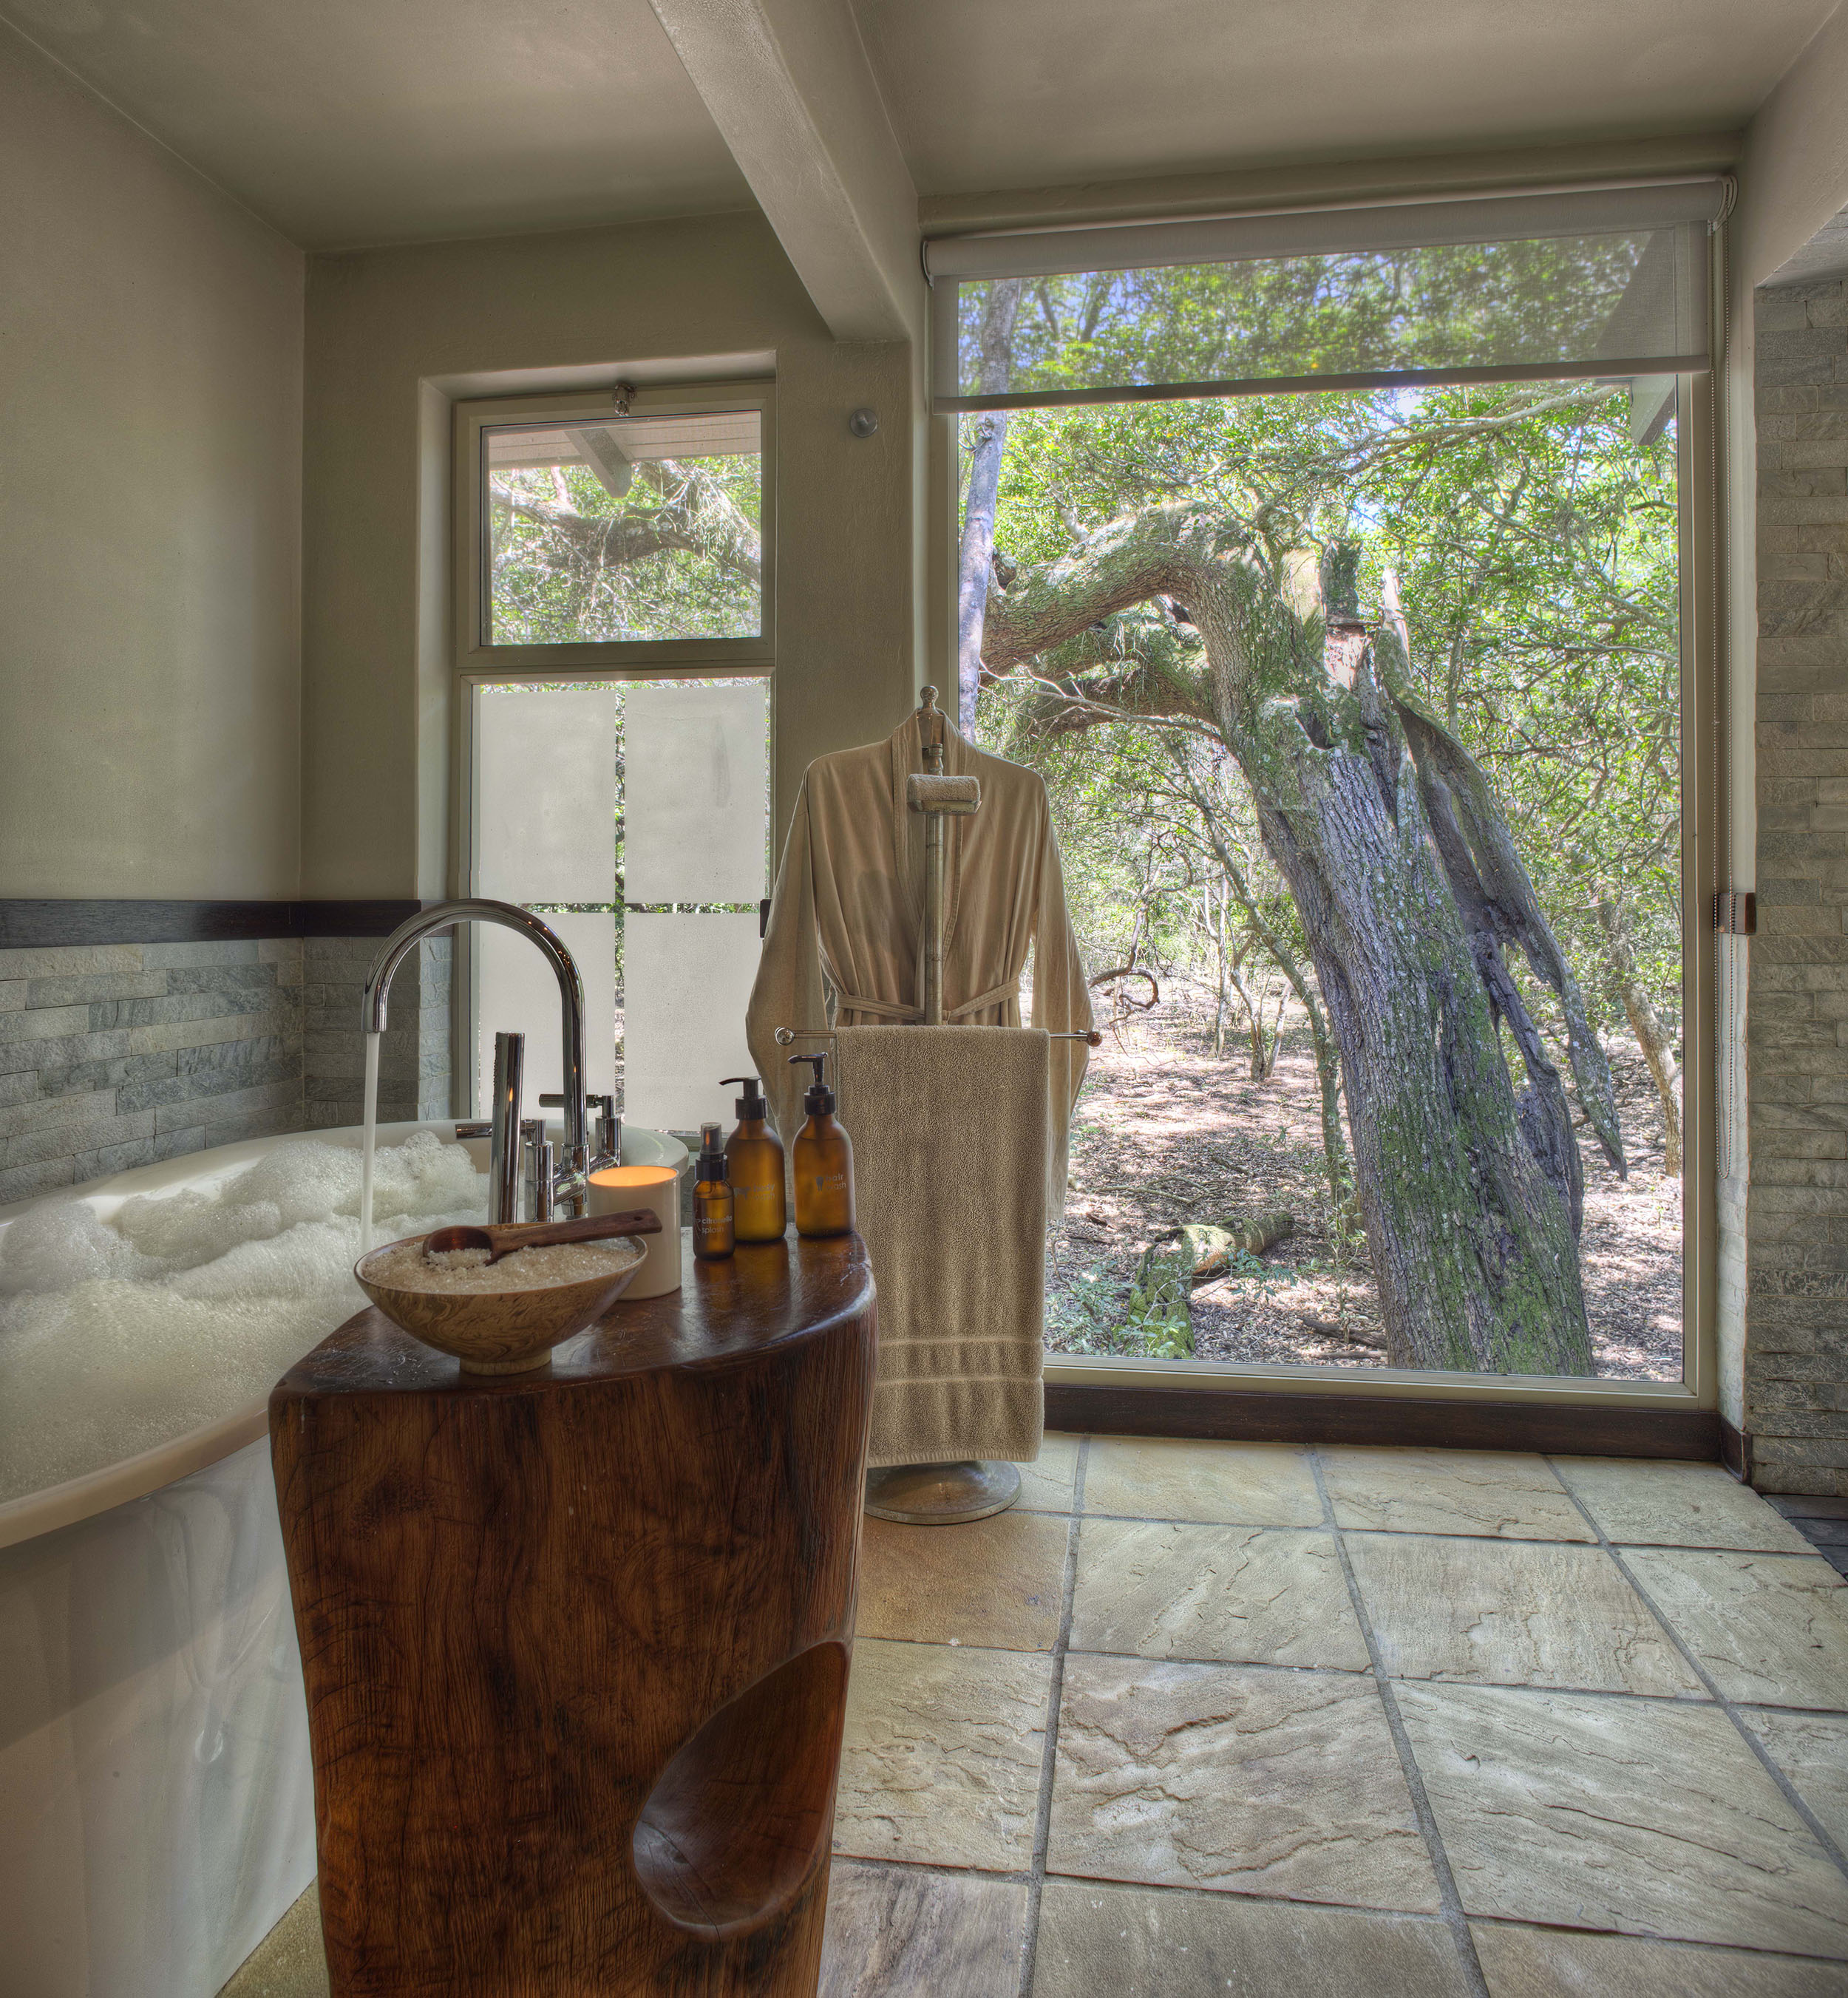 Phinda-Forest-Guest-bathroom.jpg